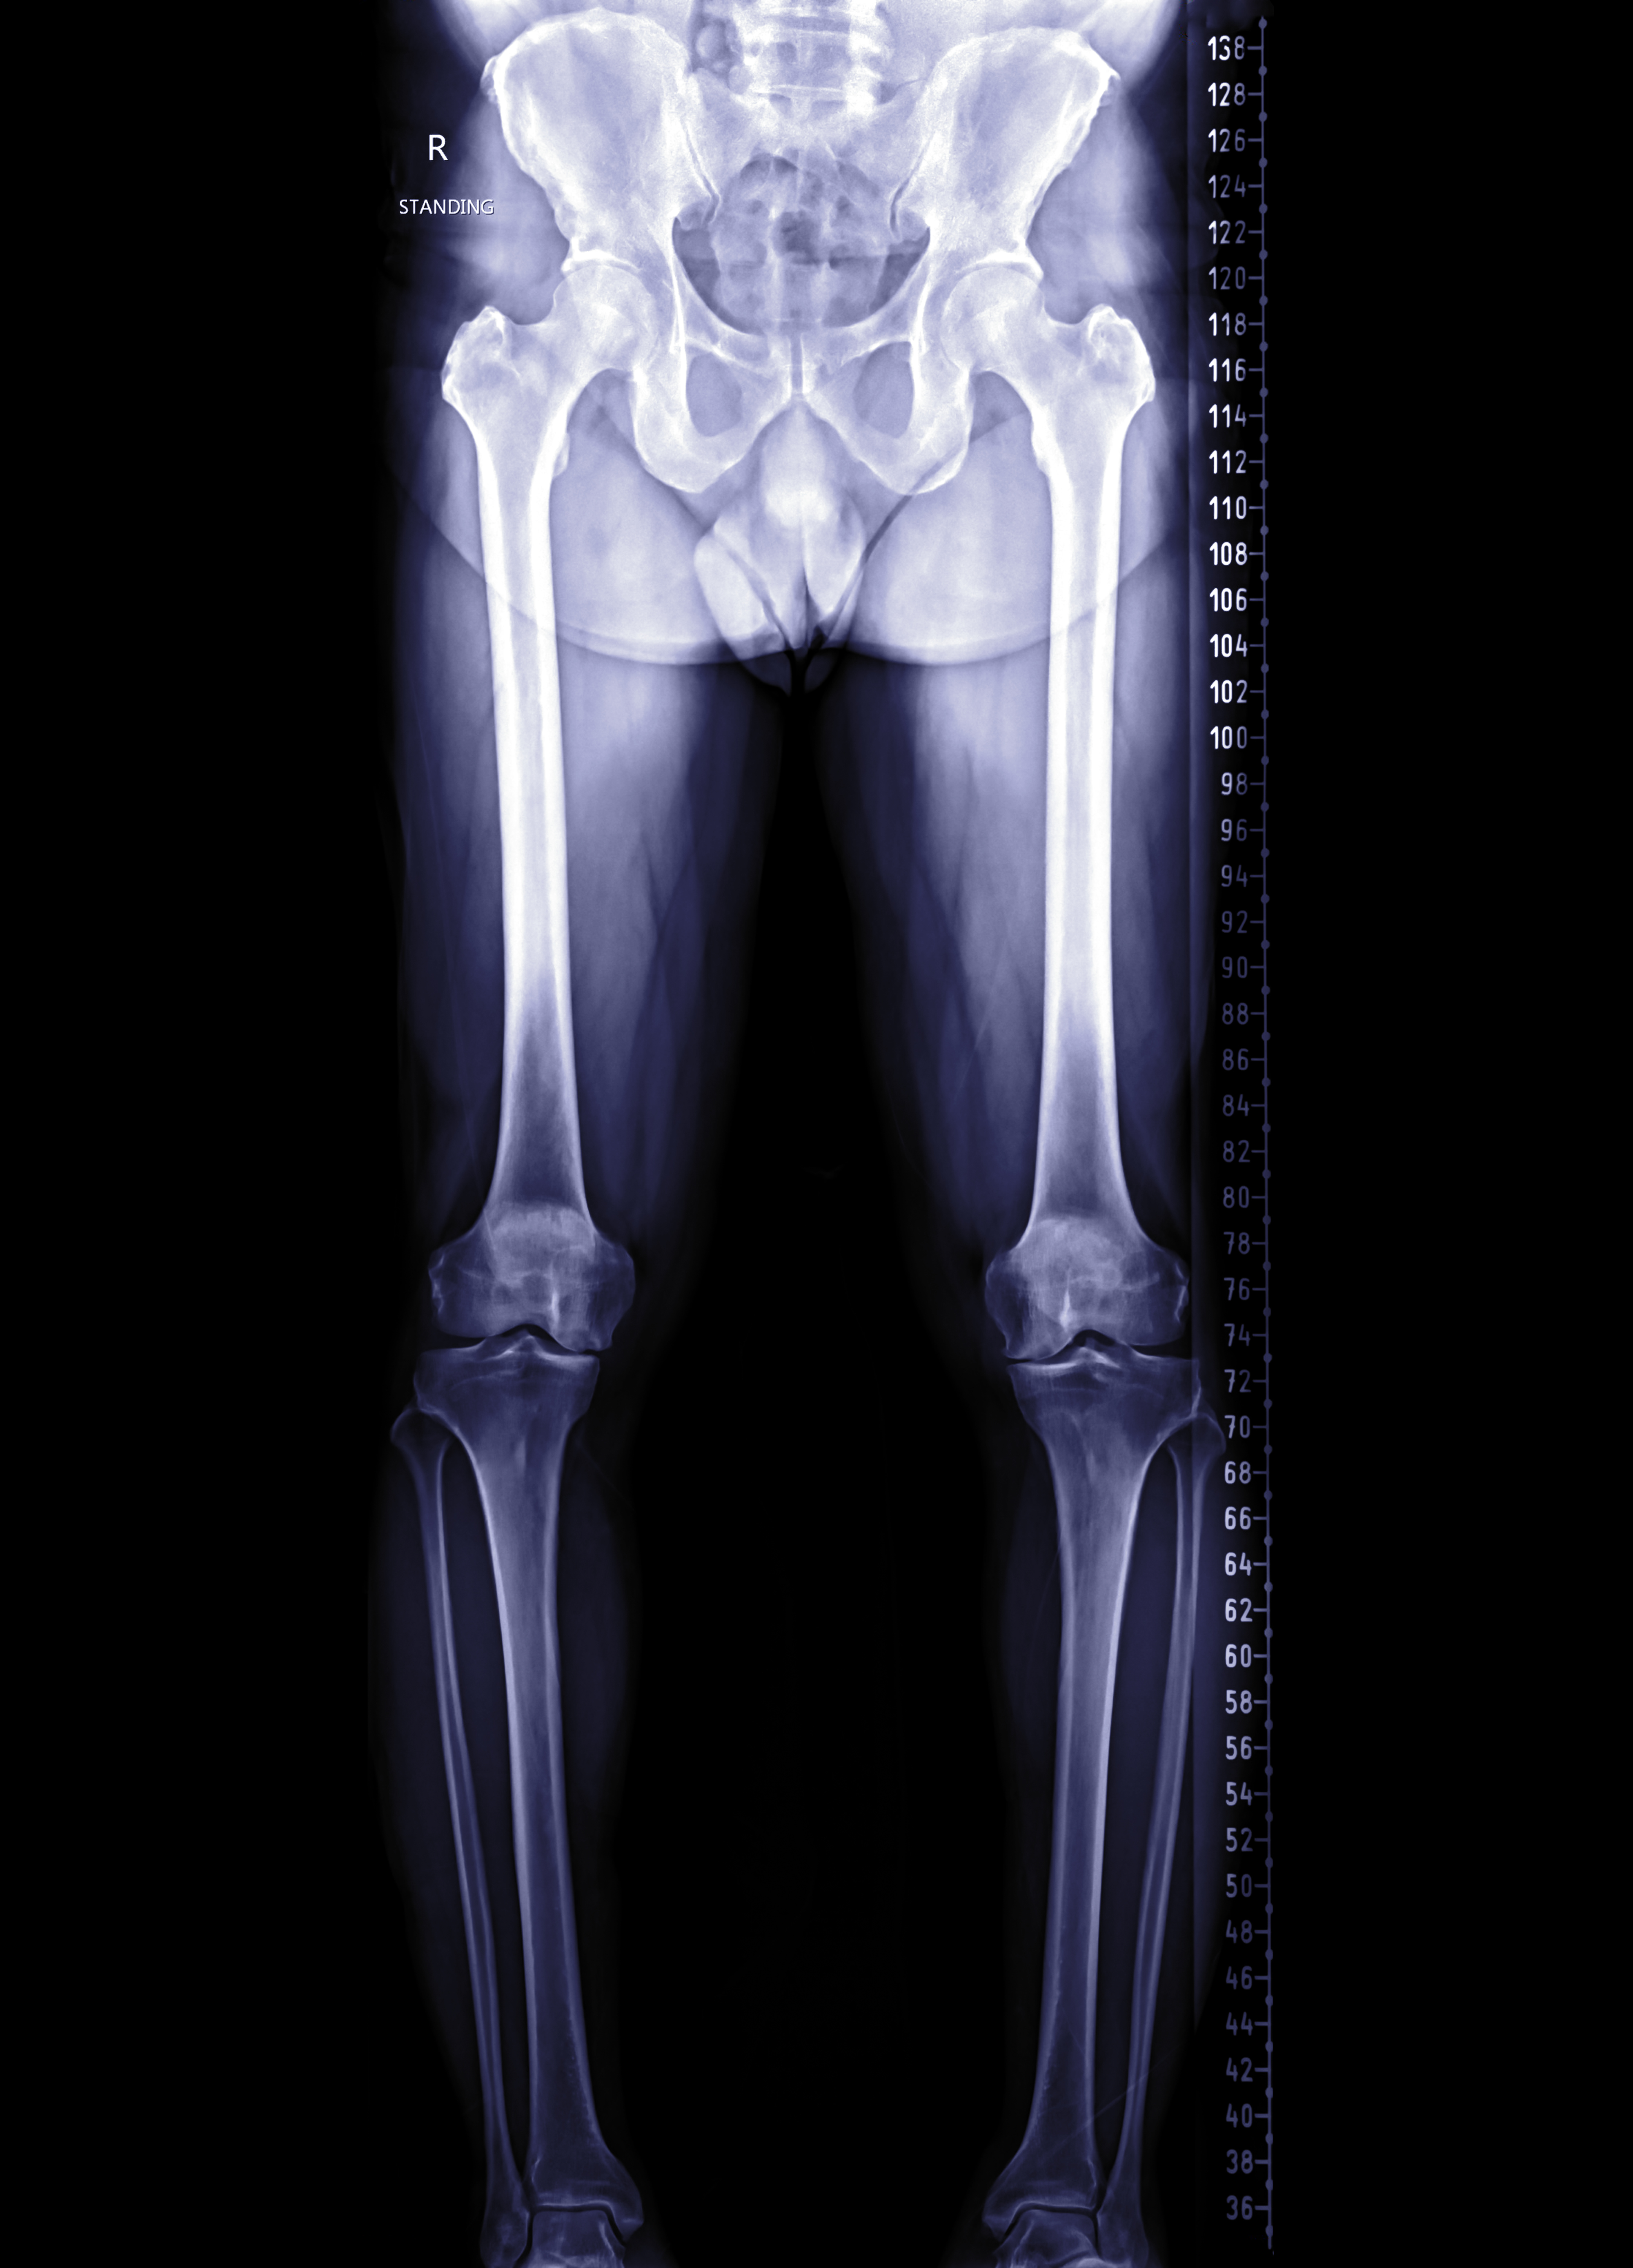 scanogram of lower limb or X-ray image of total lower extremity . Medical background concept.